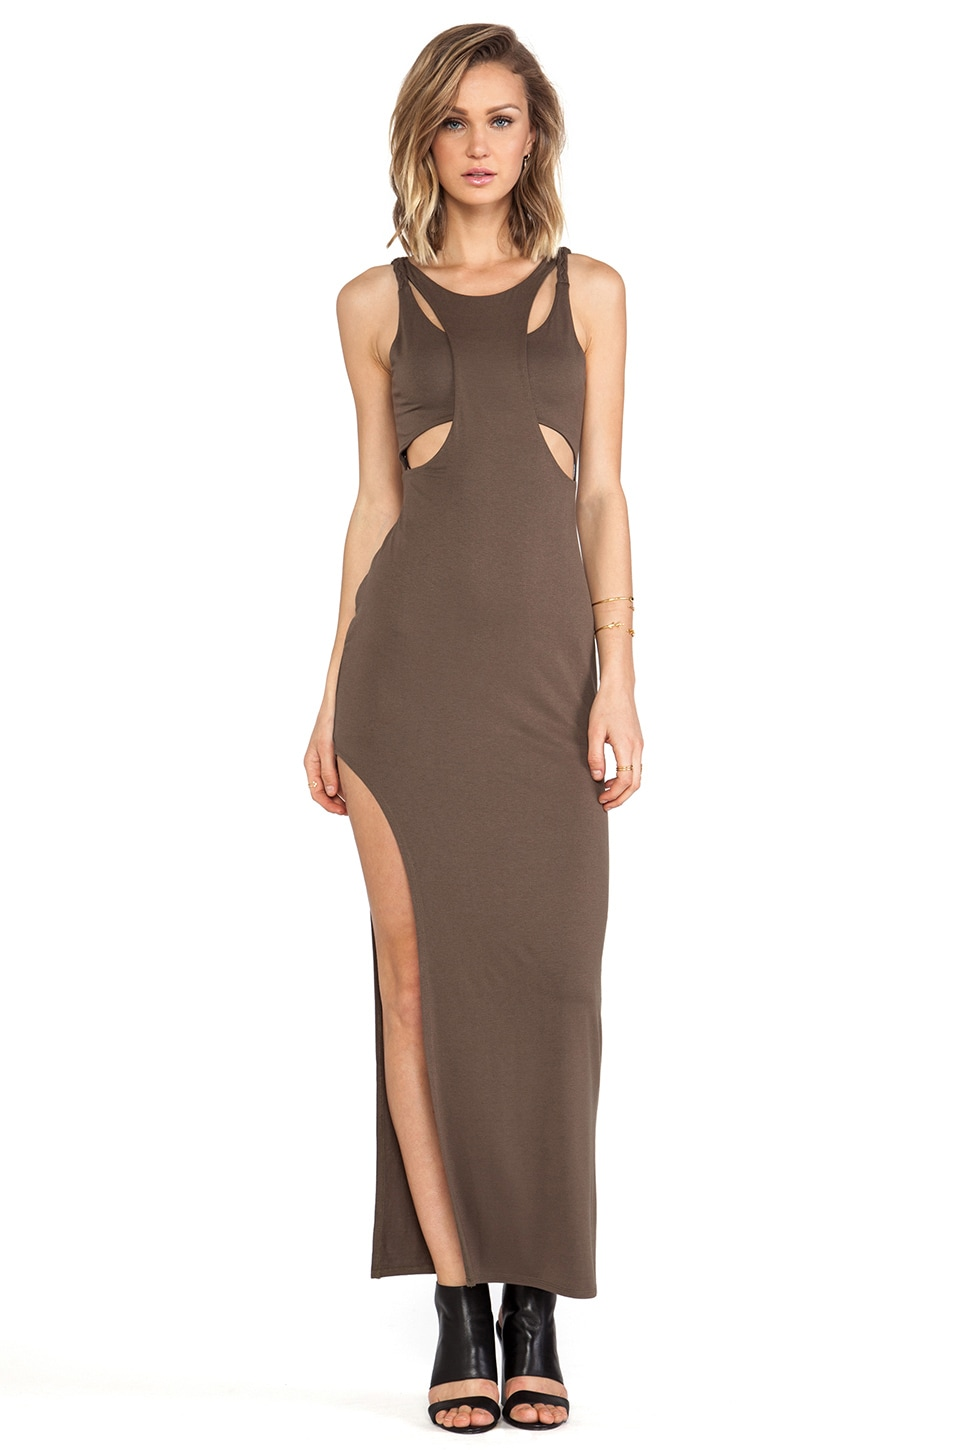 bless'ed are the meek Holey Smoke Dress in Khaki